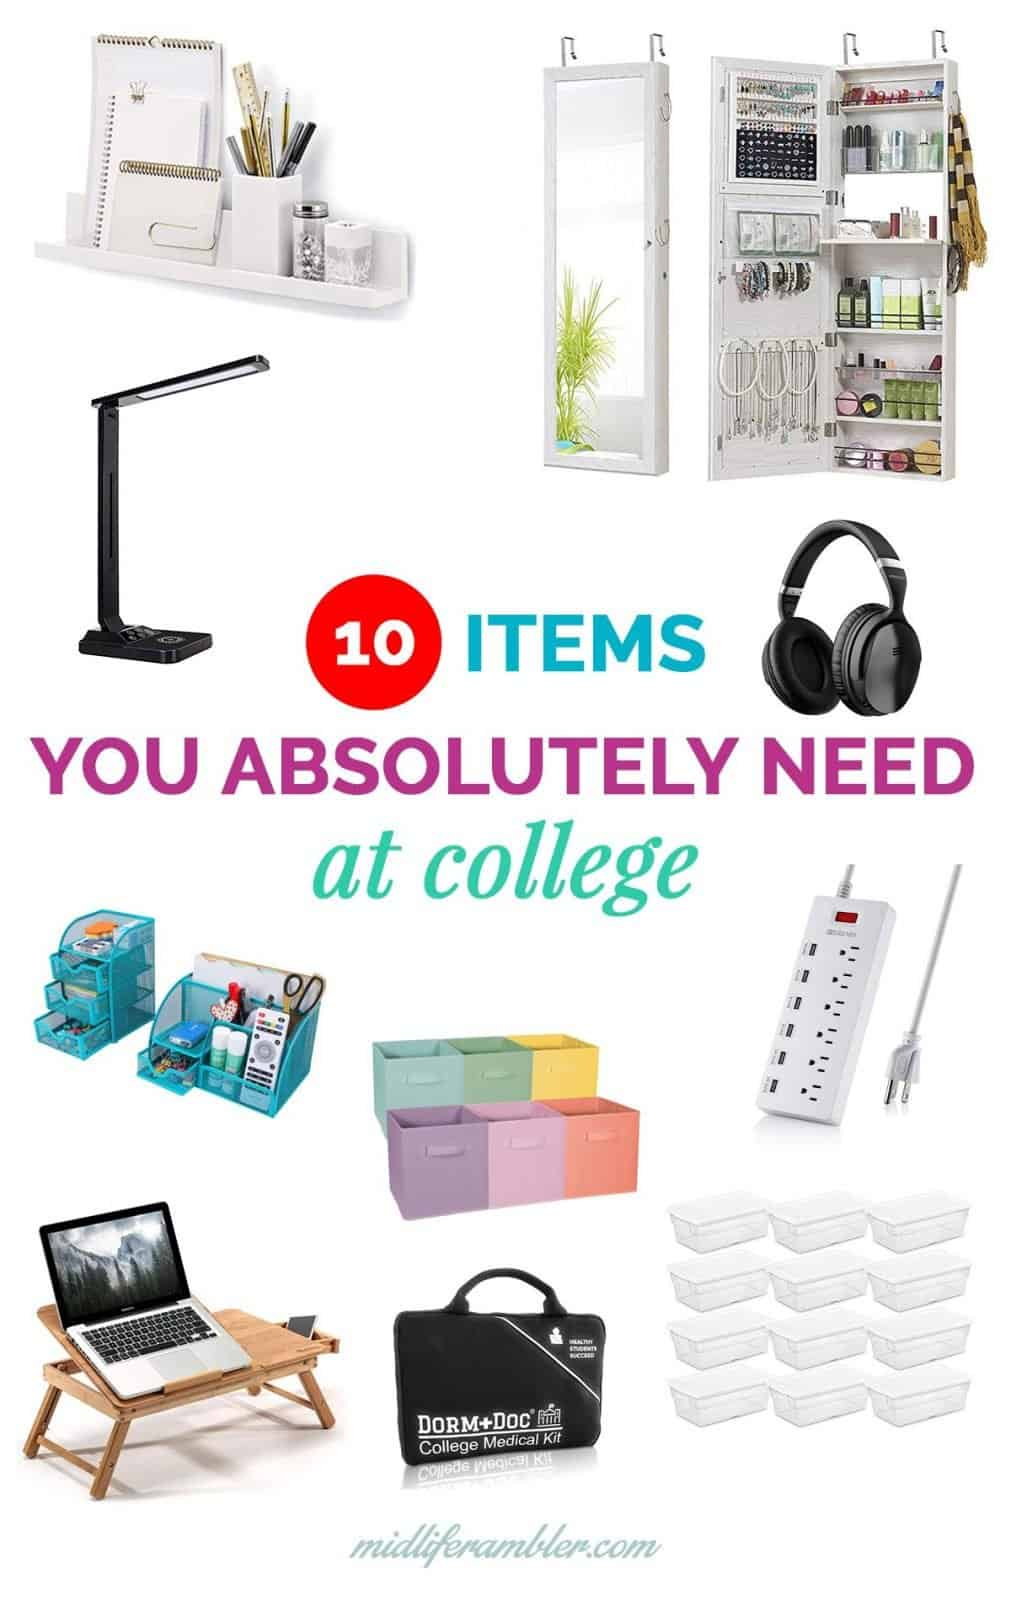 10 Essentials You Need for Your College Dorm that Even a Total Minimalist Will Use 20